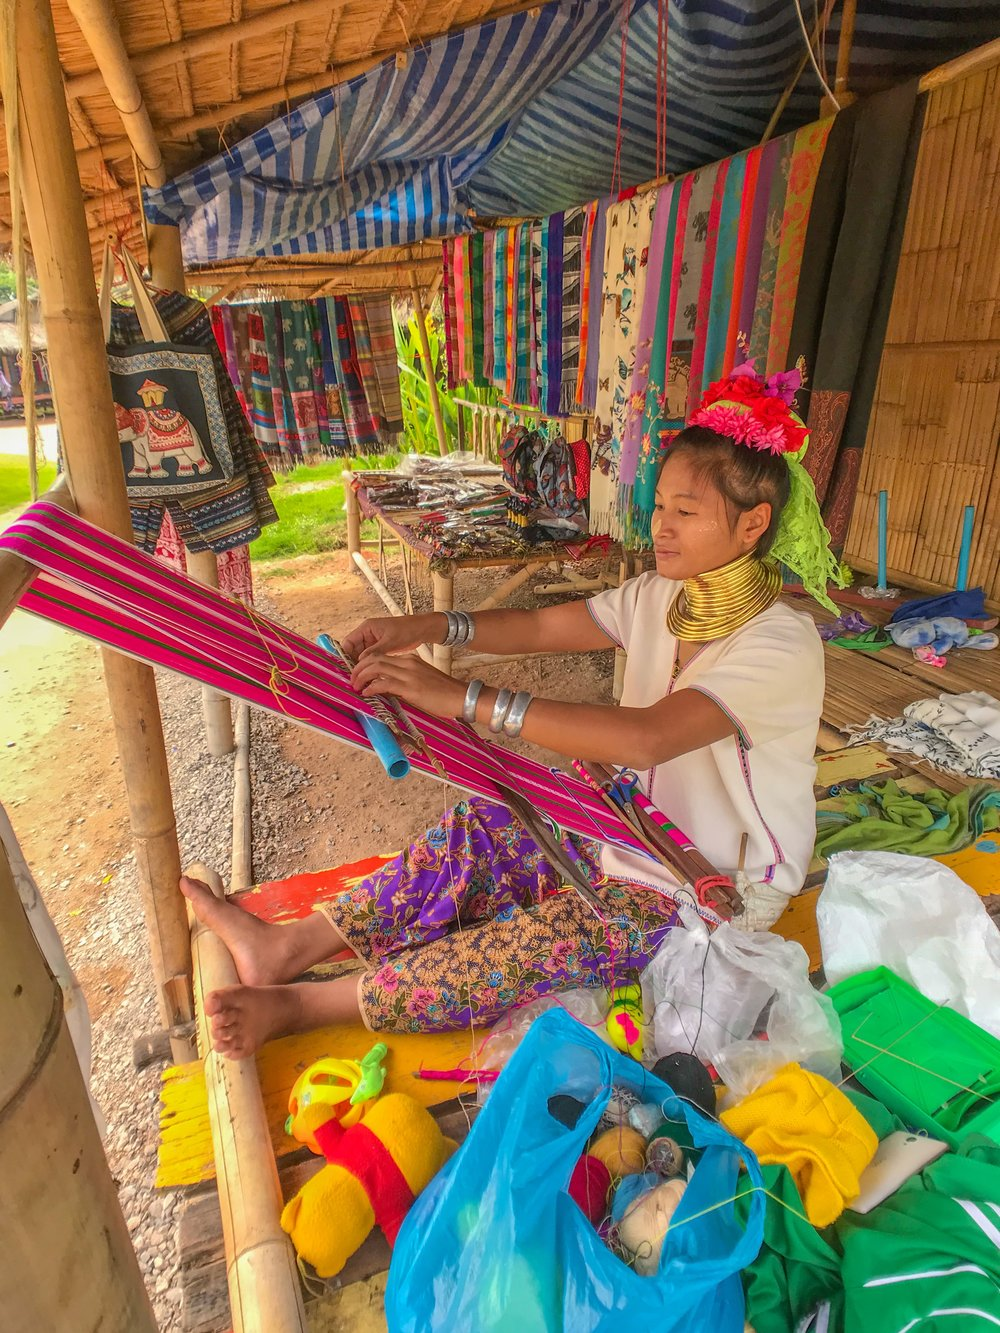 The Karen sell handicrafts and textiles to tourists to support themselves